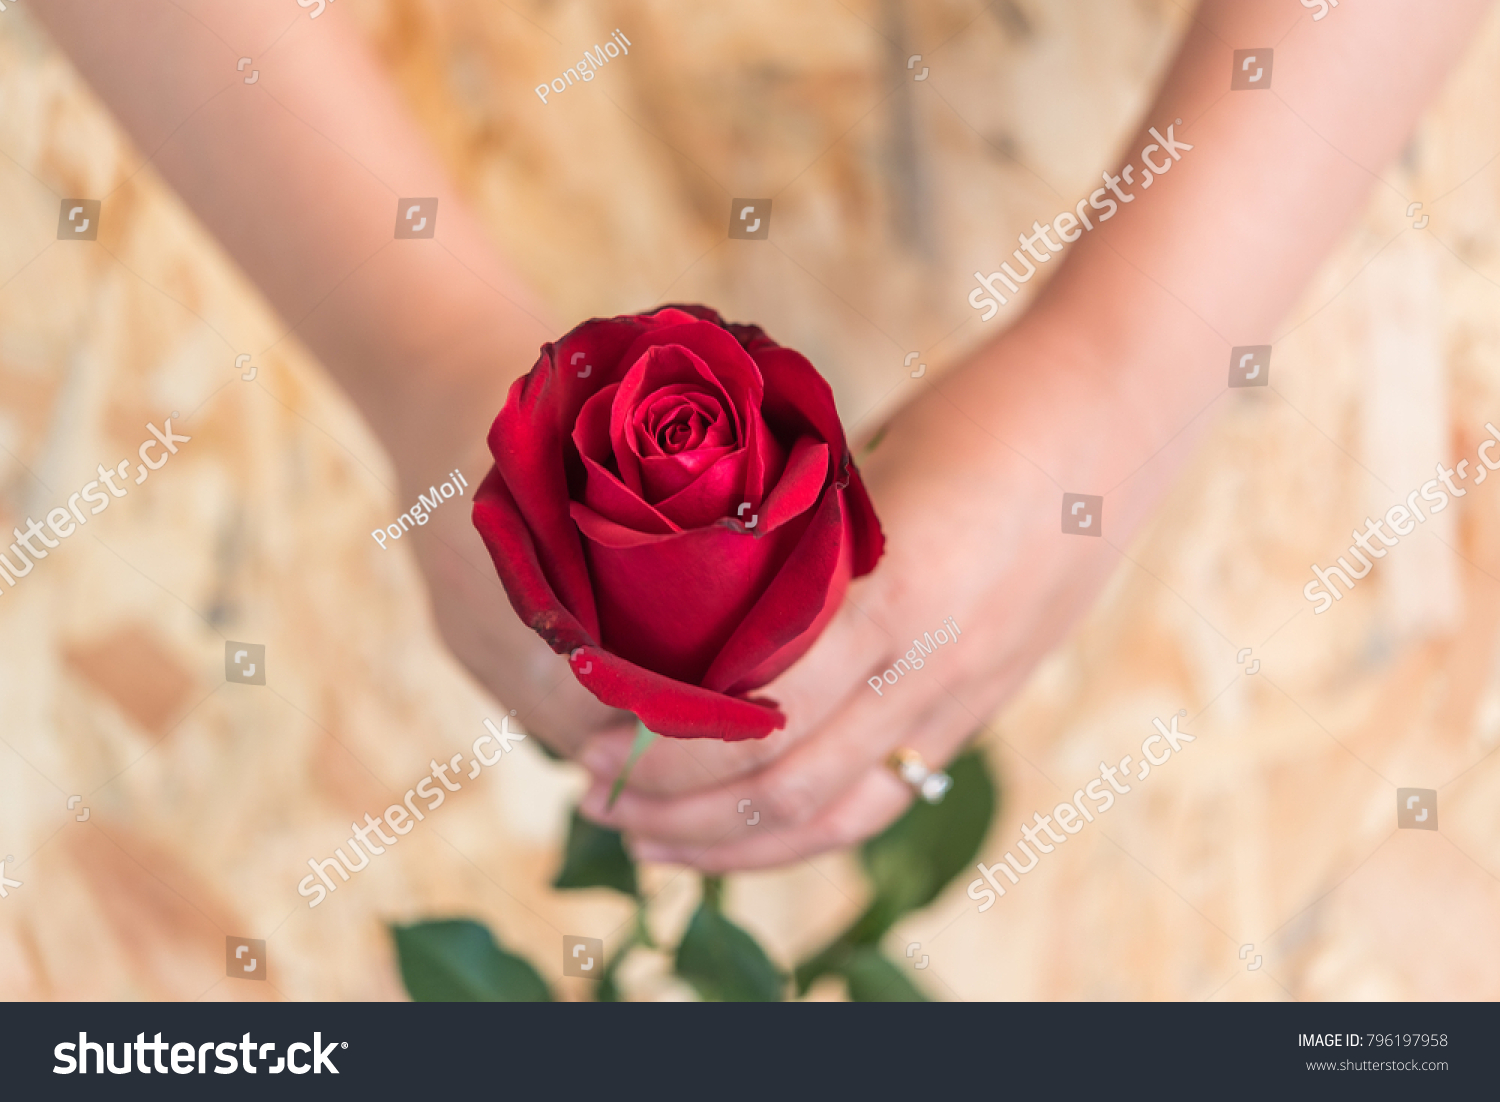 Red rose flower nature beautiful flowers stock photo edit now red rose flower nature beautiful flowers from the garden and human hand holding red rose flower izmirmasajfo